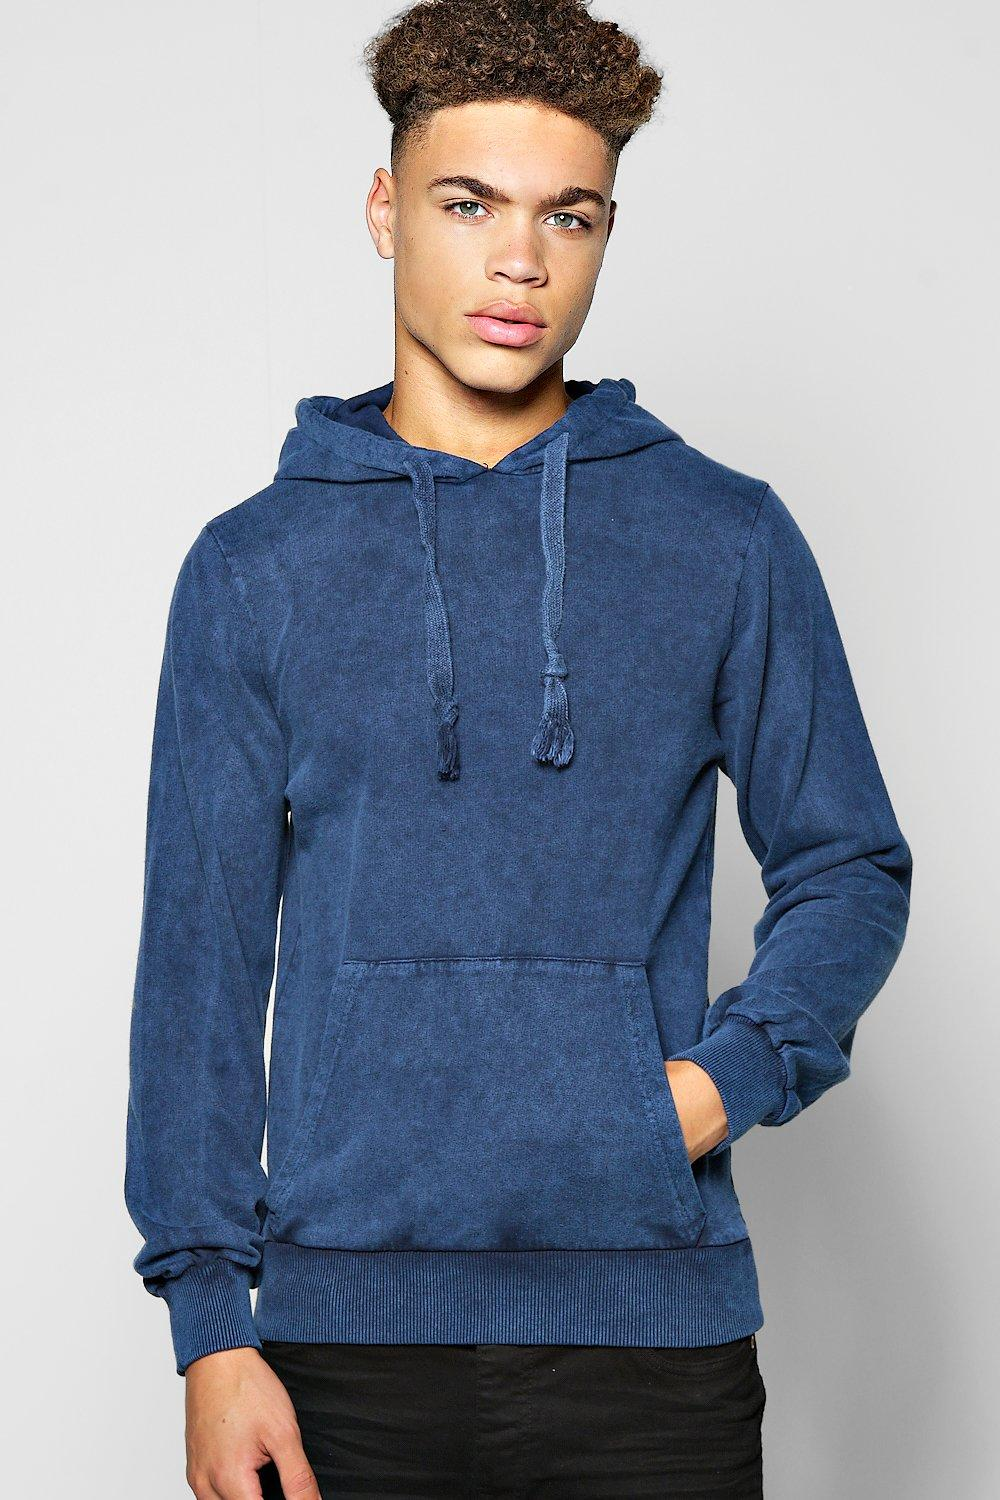 Over The Head Hoodie In Acid Wash